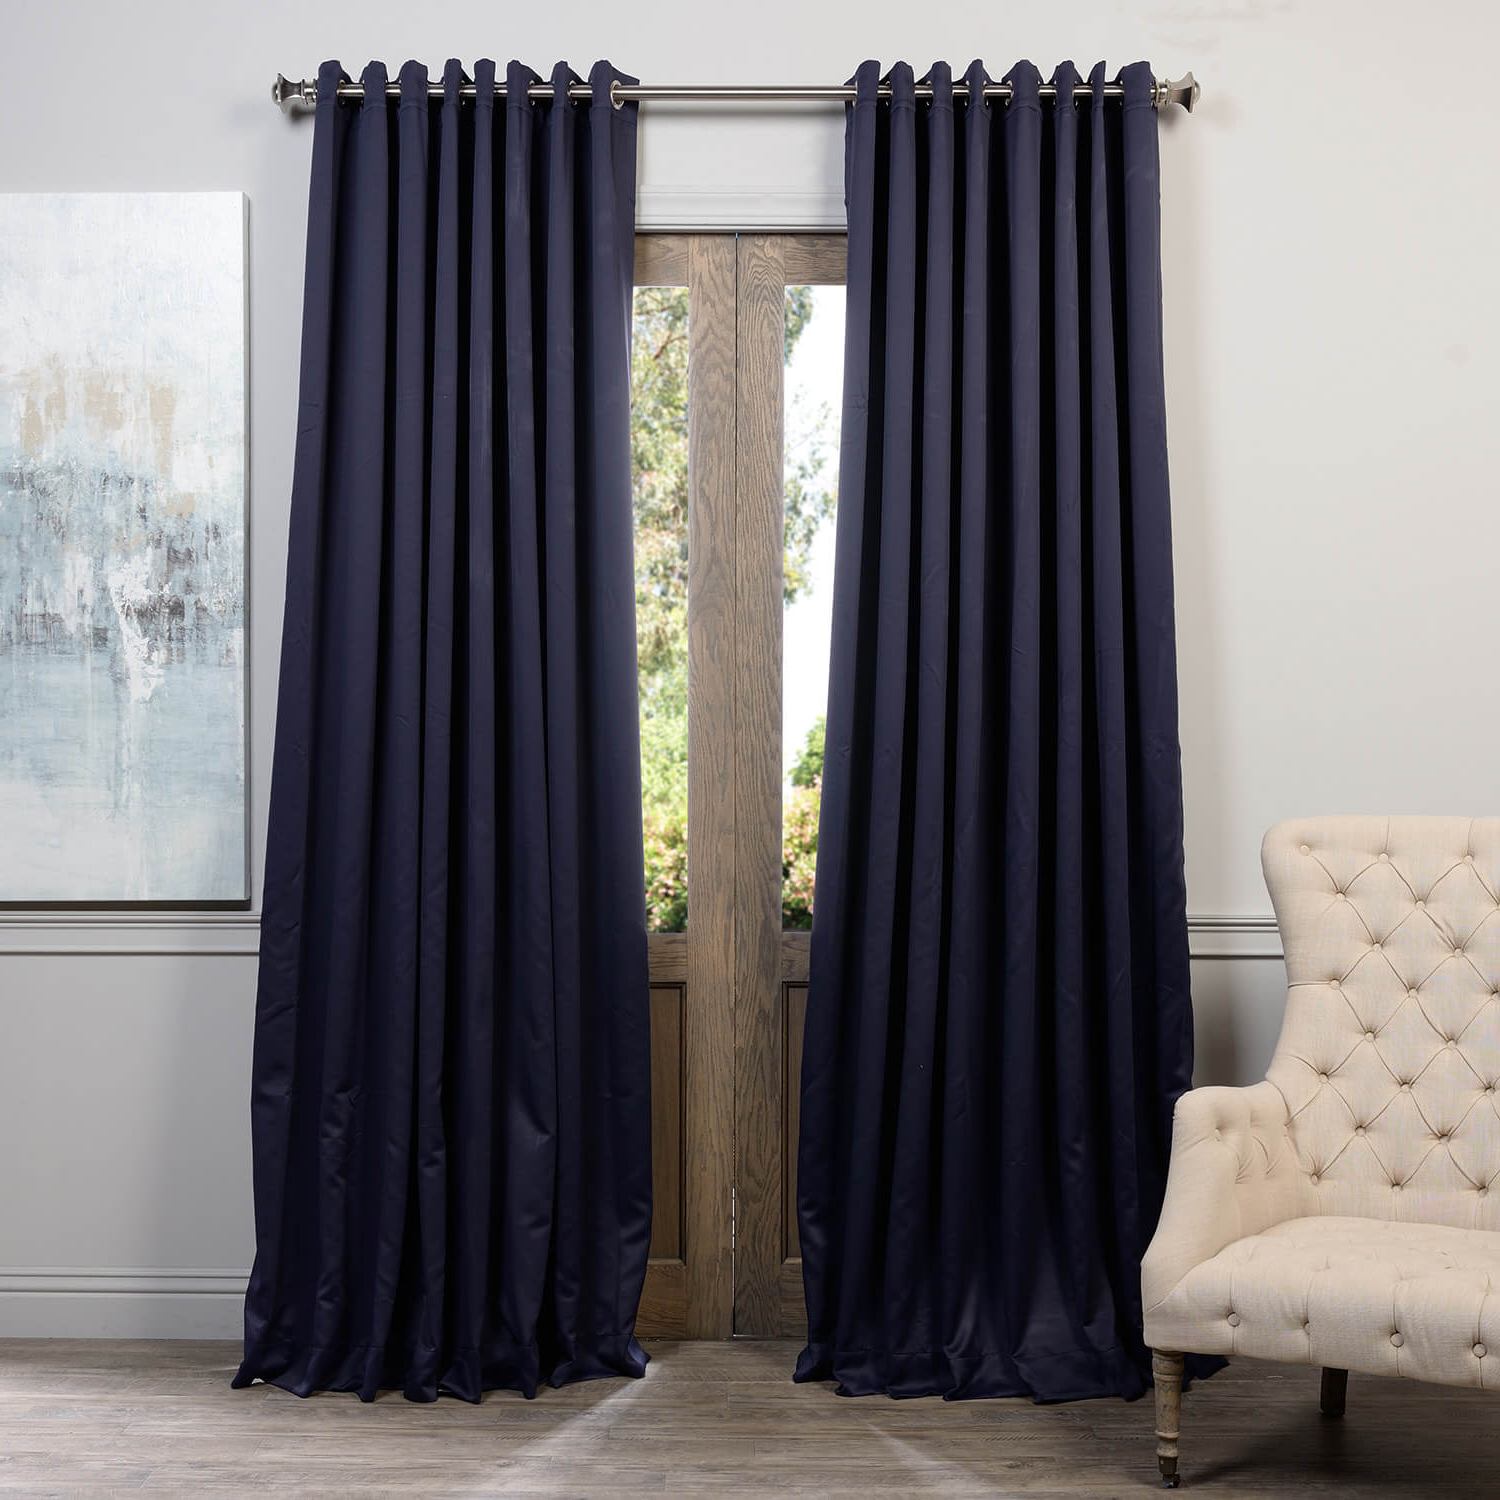 Newest Faux Silk Extra Wide Blackout Single Curtain Panels With Regard To Navy Blue Grommet Extra Wide Blackout Curtain (View 20 of 20)